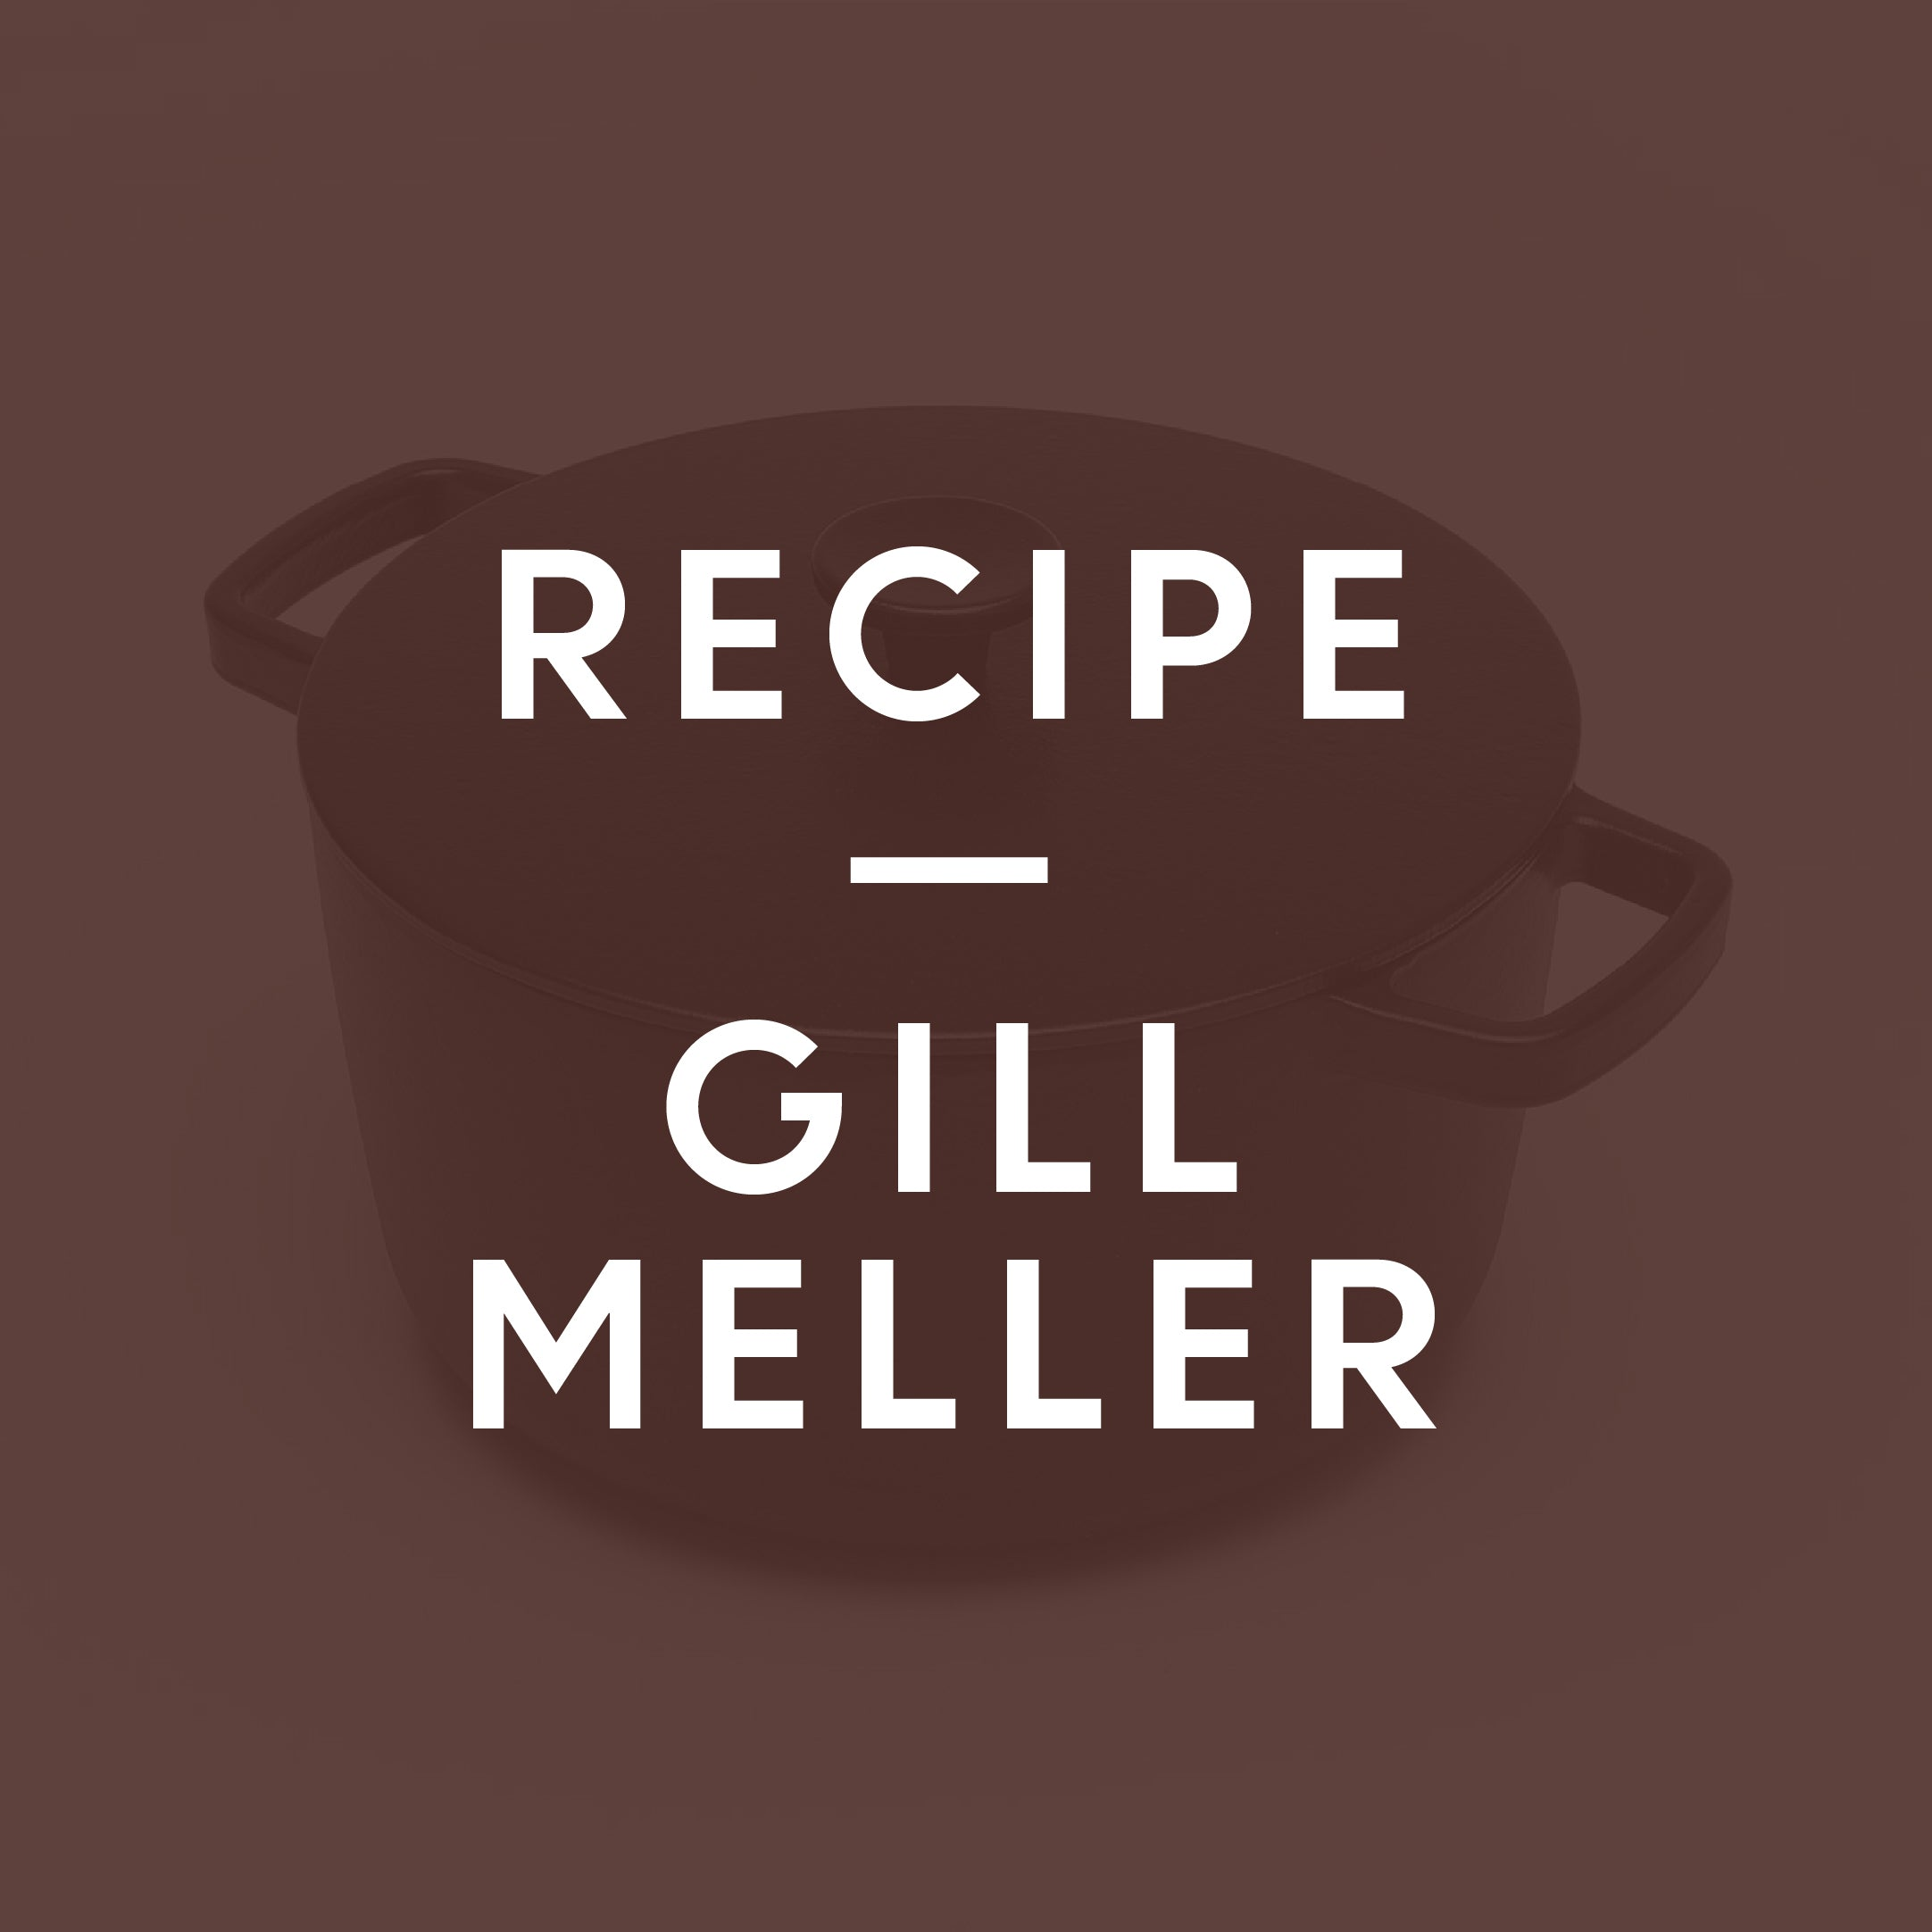 //cdn.shopify.com/s/files/1/0859/6096/files/CR_WEB_RecipeImage_01GMeller.jpg?18205109326666144105